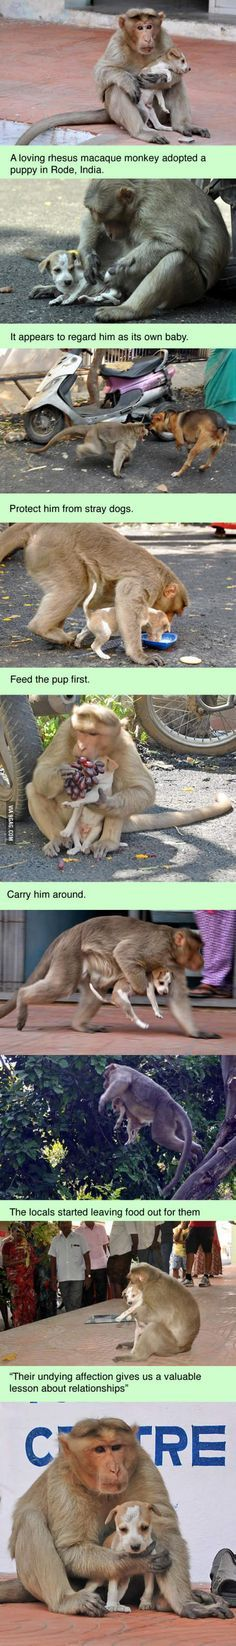 Street monkey takes a stray puppy under her wing. Bless. :'(